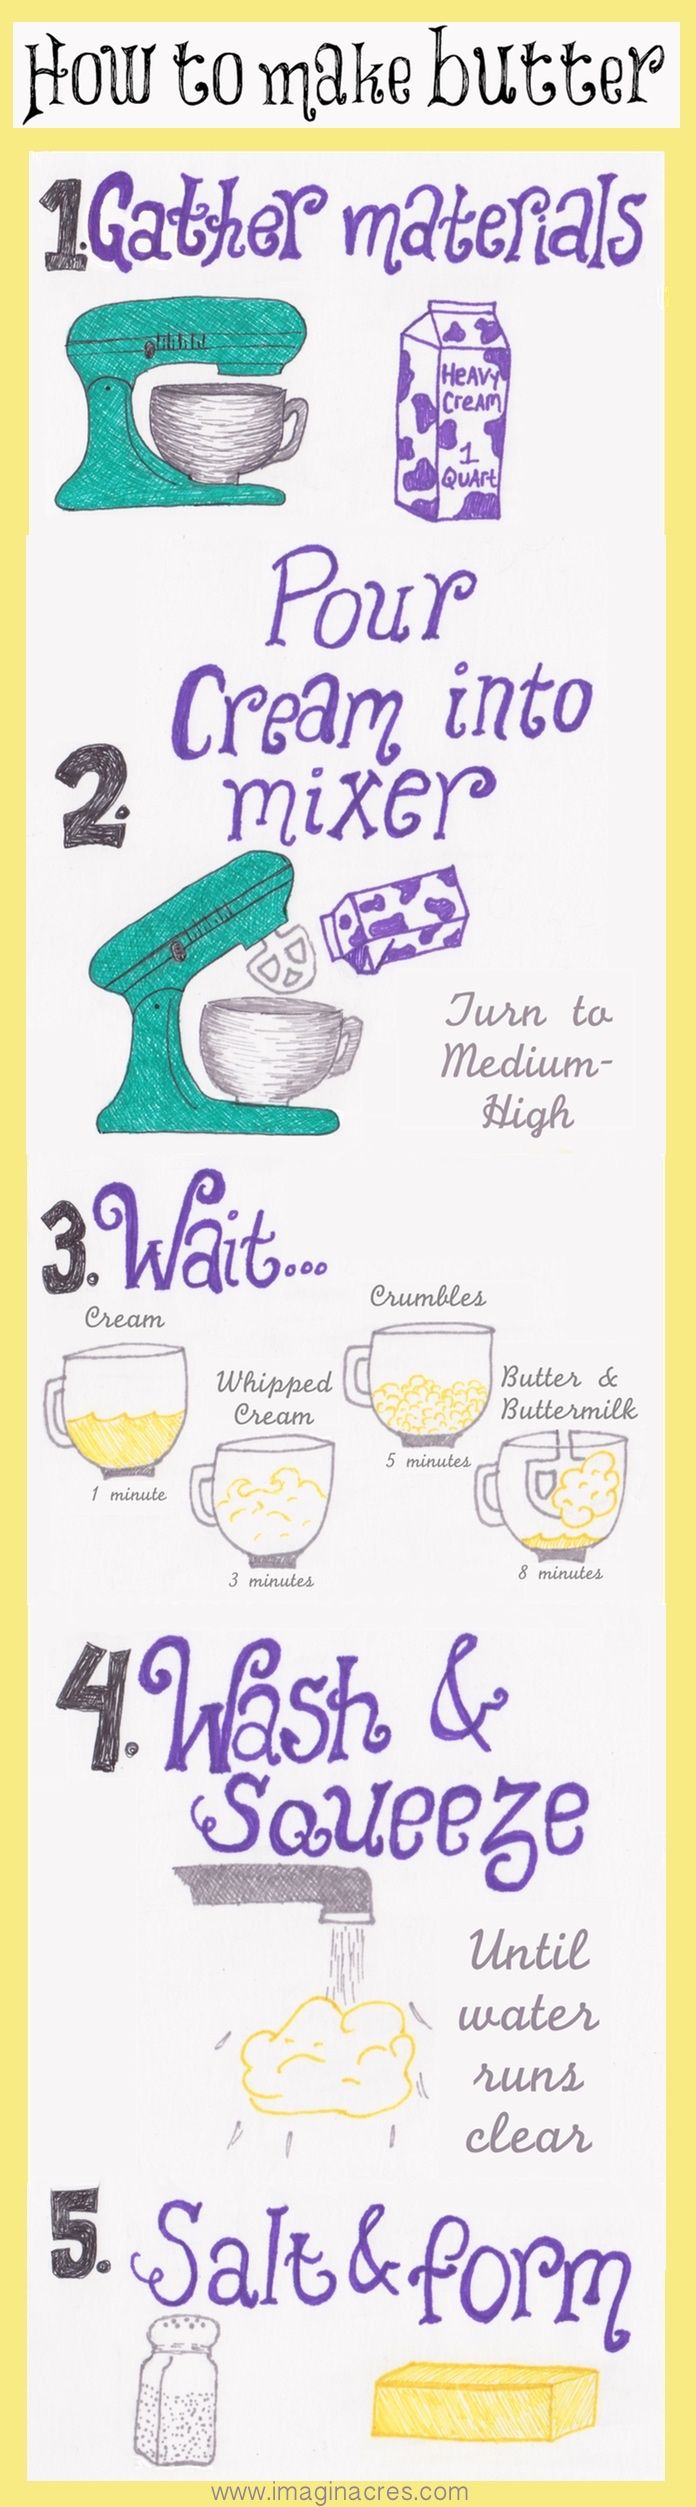 How to Make Butter: A Visual Guide